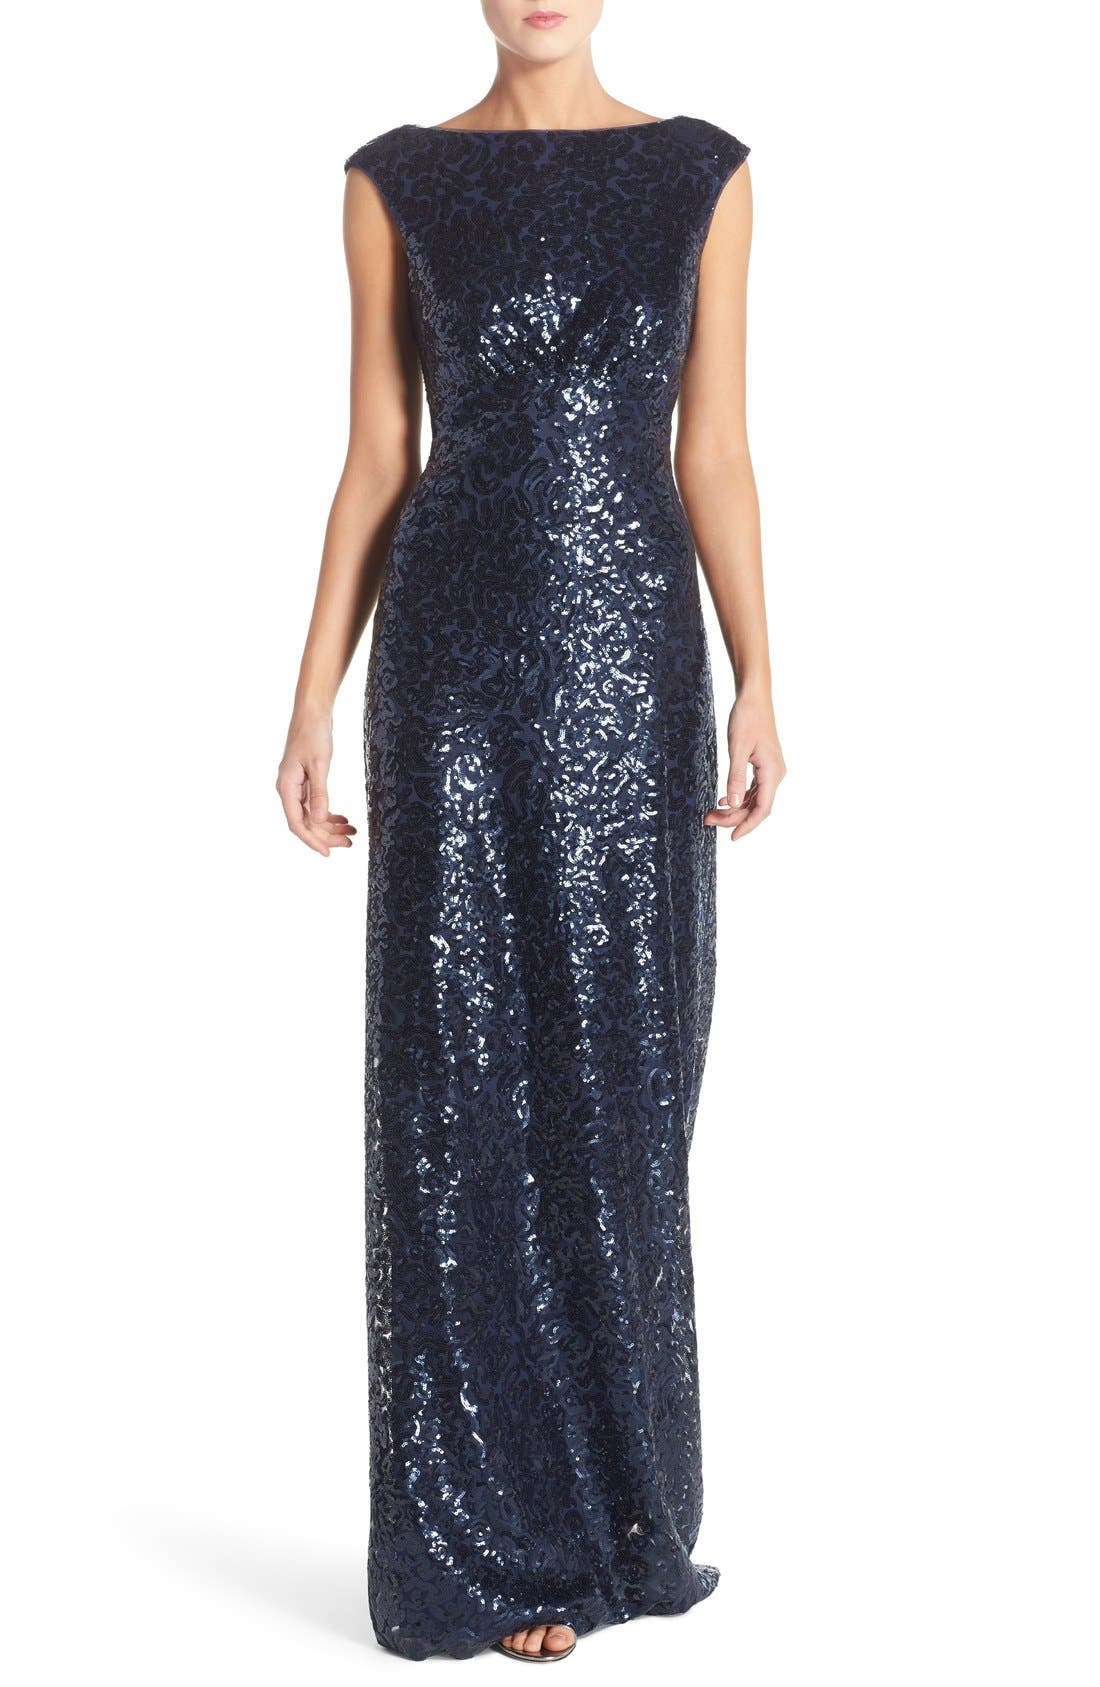 Alternate Image 1 Selected - Donna Morgan 'Evie' Sequin Bateau Neck A-Line Gown